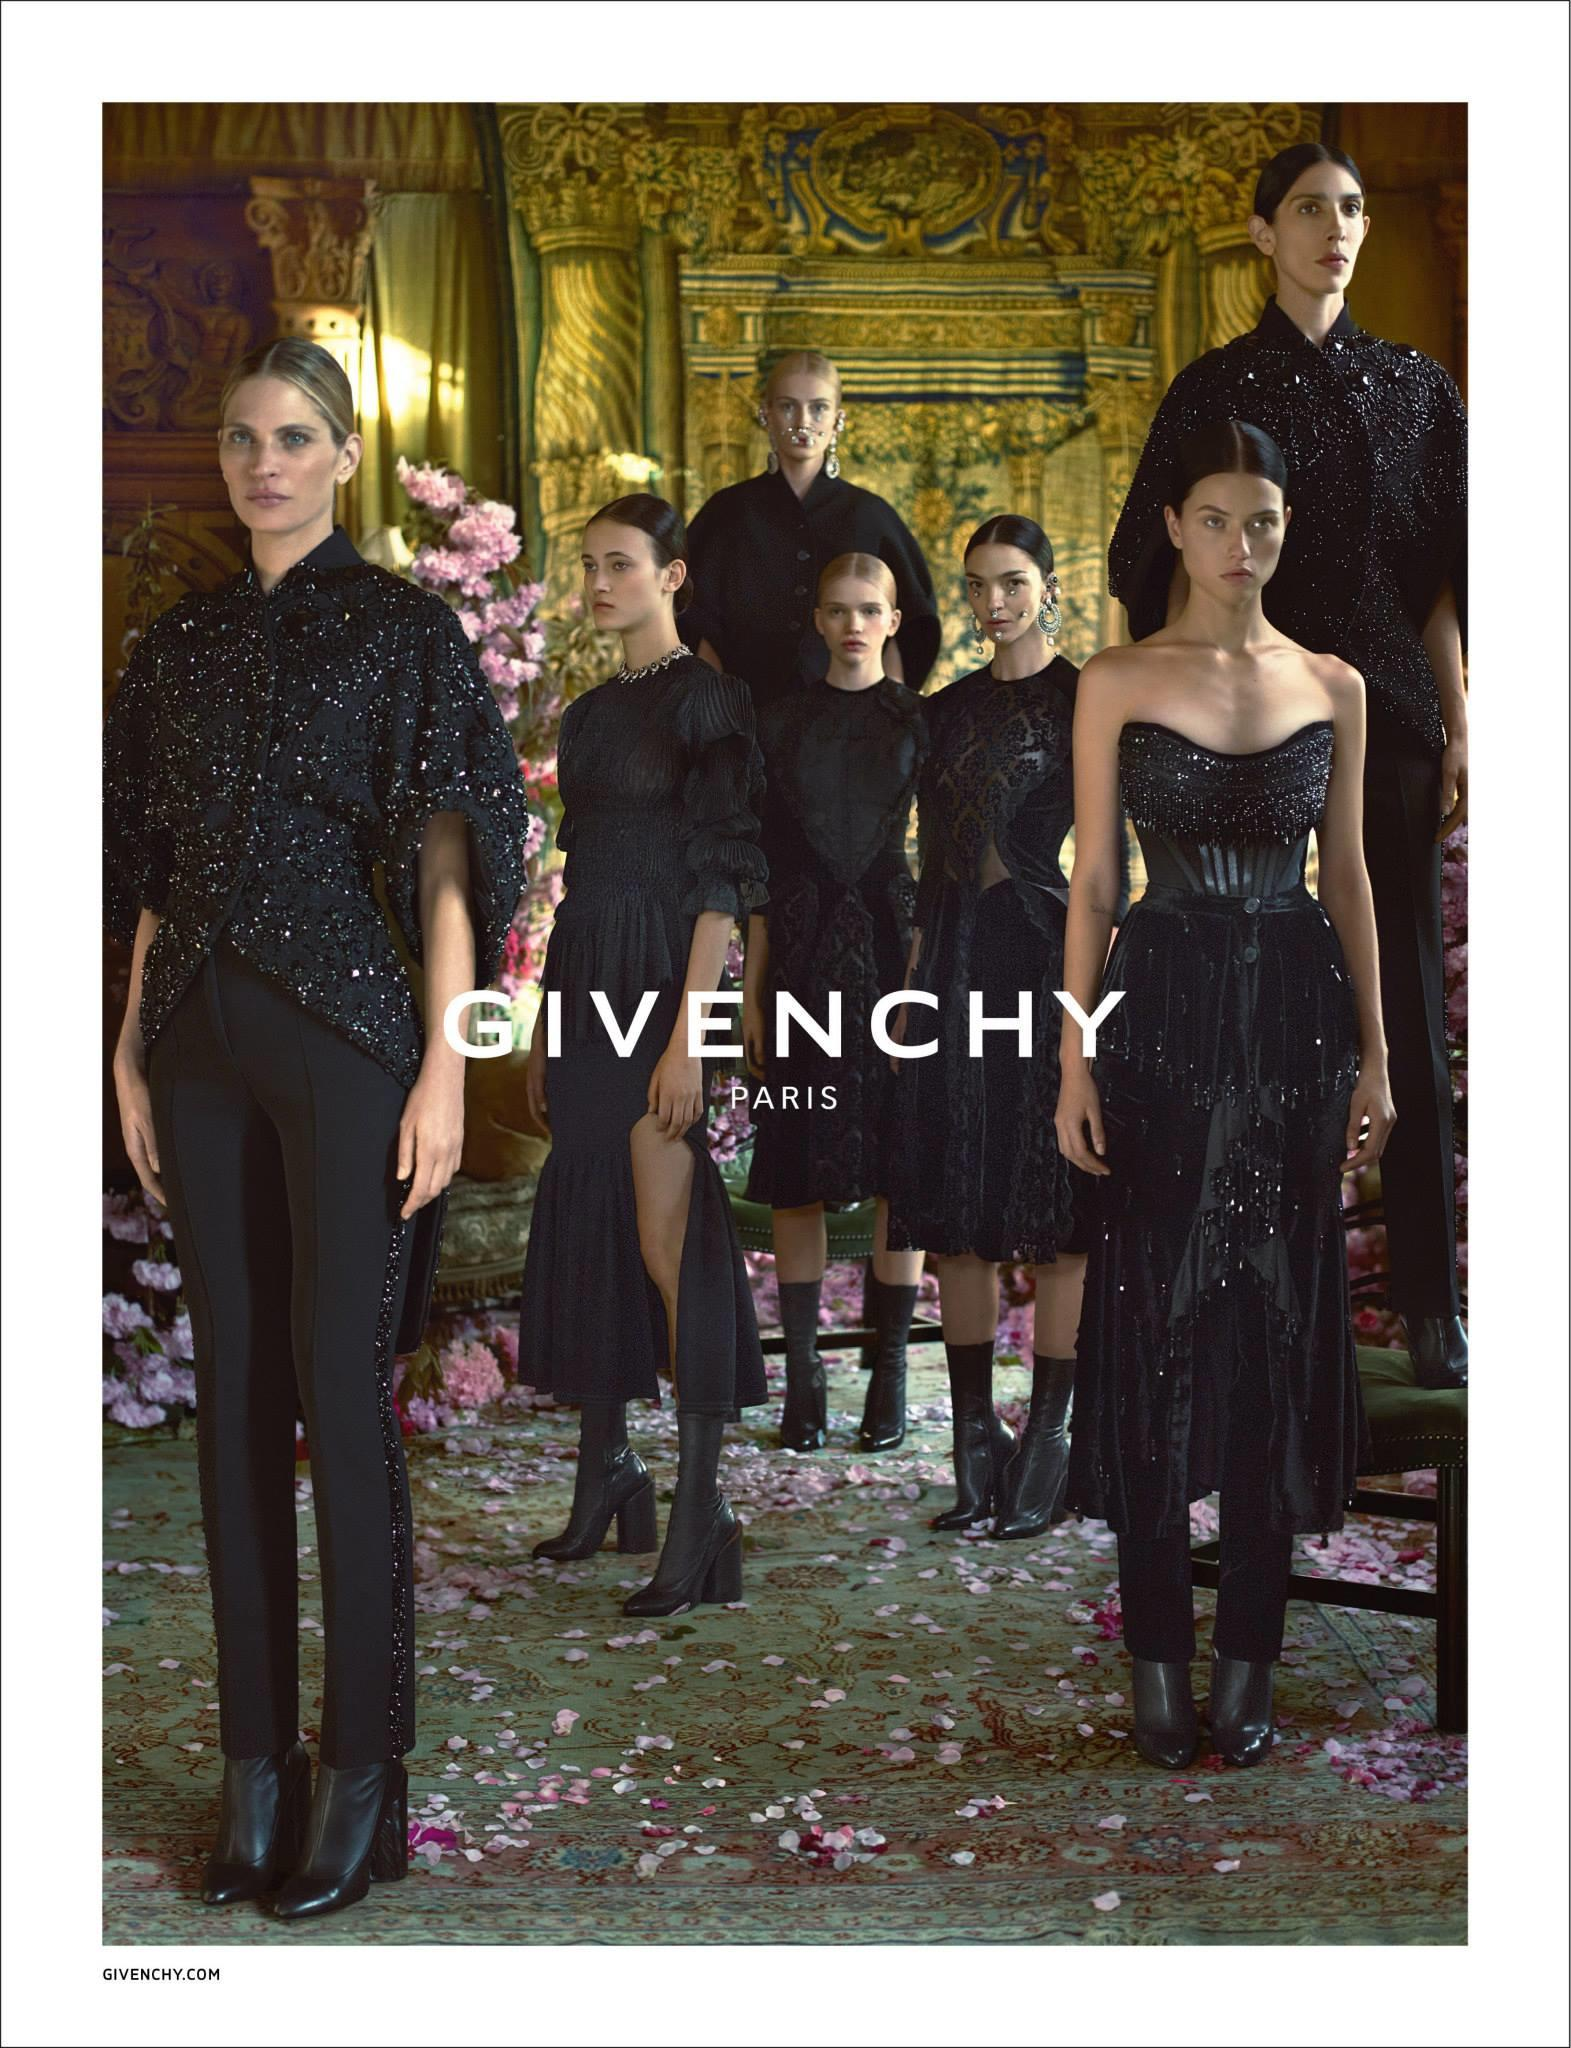 Givenchy Fall Winter 2015 Ad Campaign Featuring